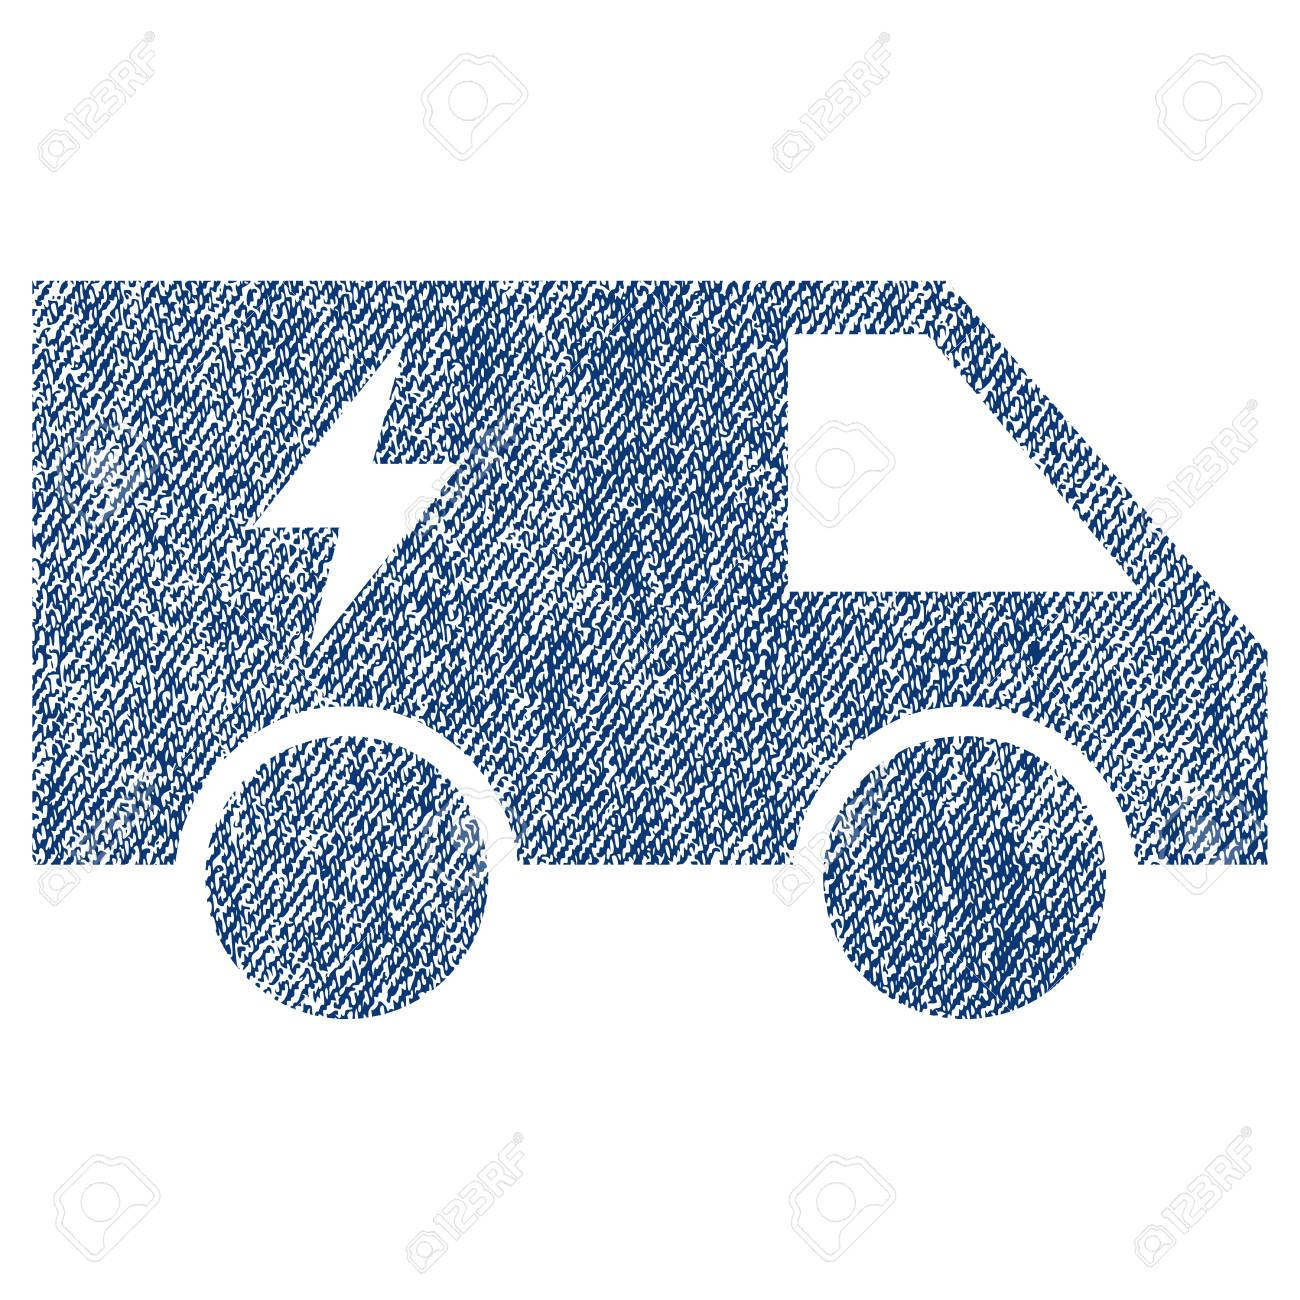 Electric Power Car Raster Textured Icon For Overlay Watermark Stamps Blue Jeans Fabric Rasterized Texture